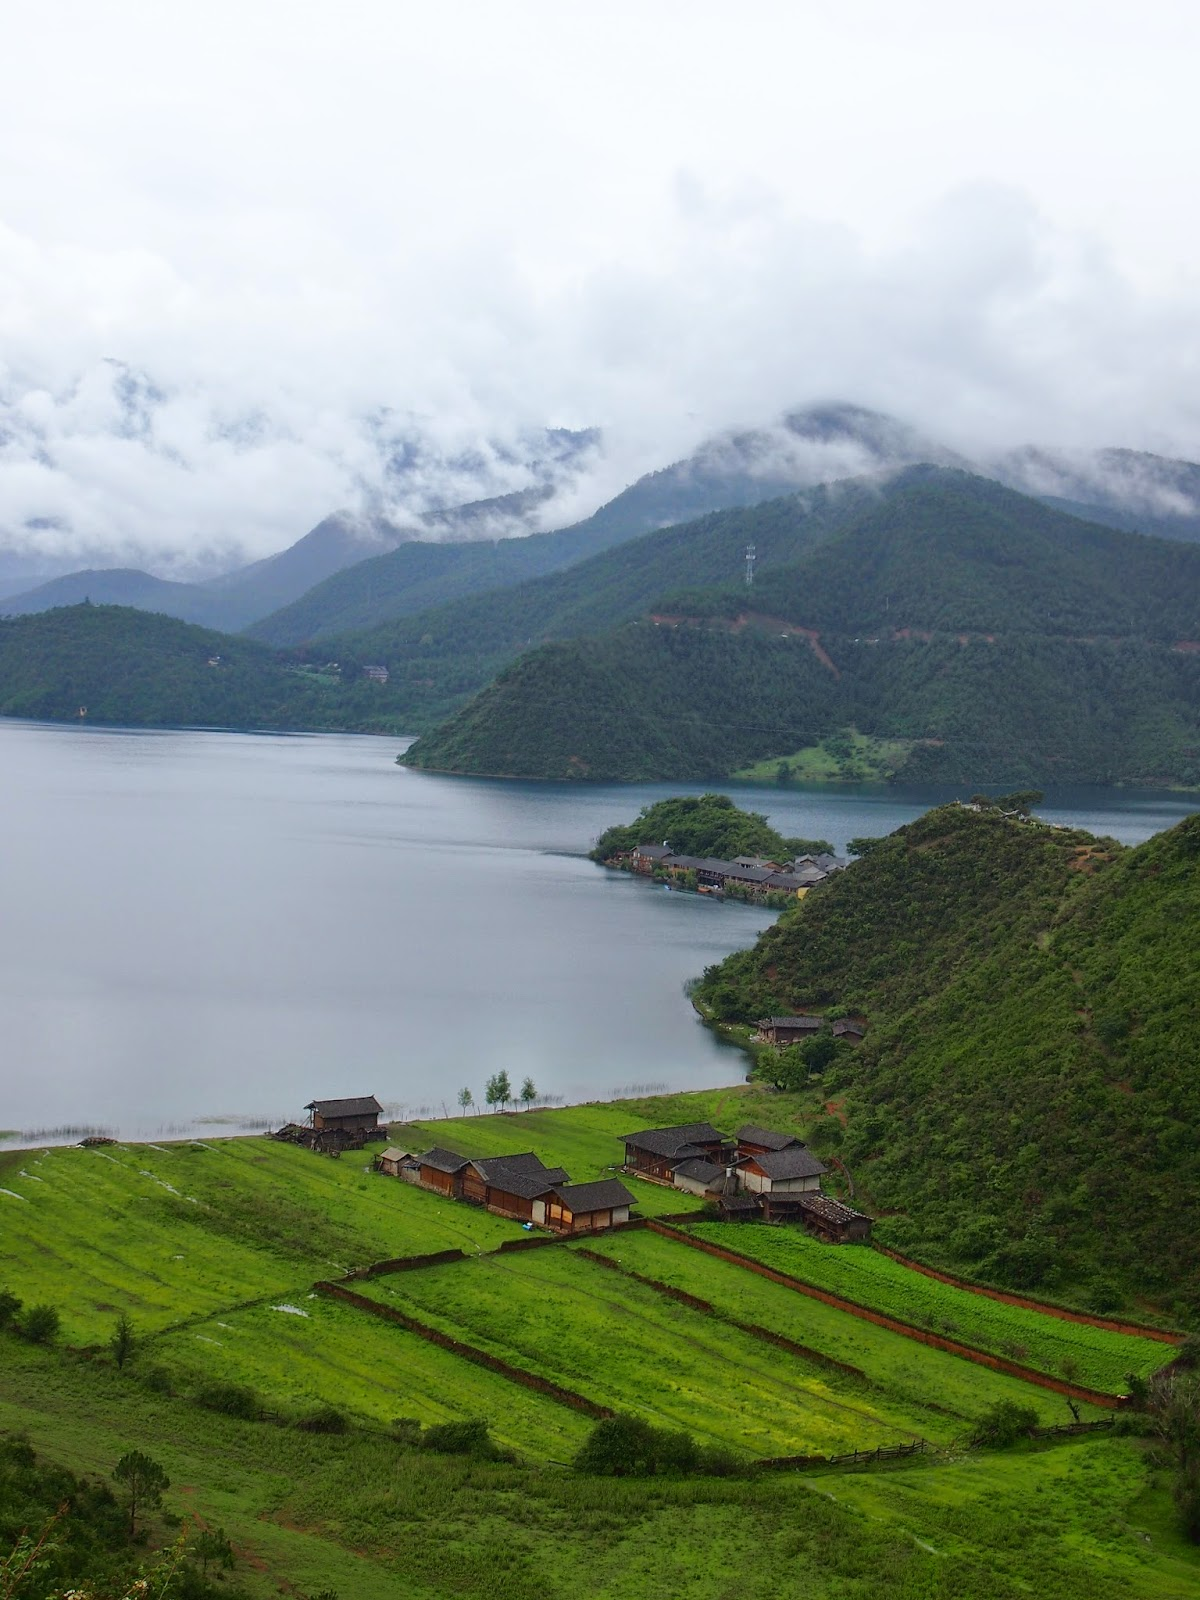 Lugu Lake with clouds covering the mountains